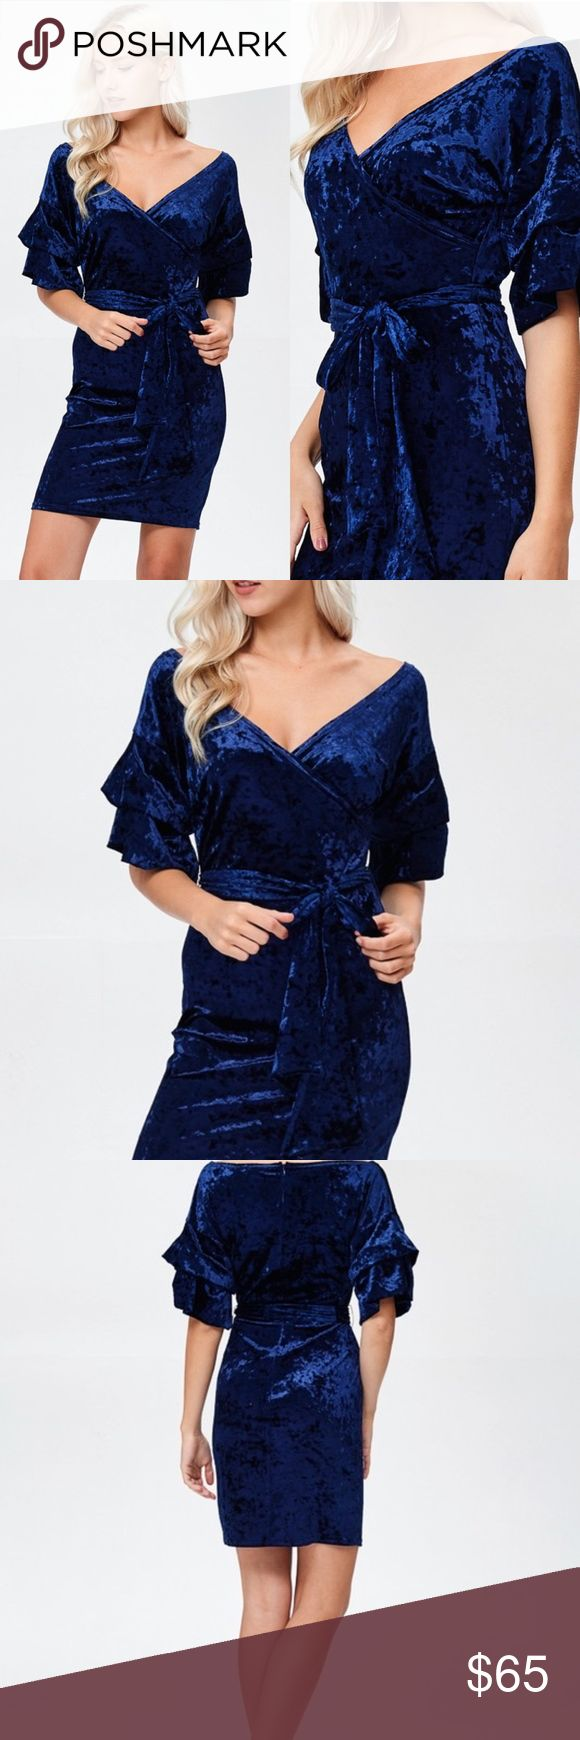 Royal Blue Ice Velvet Tiered Sleeve & Tie Waist Royal Blue Ice Velvet Tiered Ruched Sleeve Surpliced Wide Neck Dress With Waist Tie.  Price is Firm No Trades Glamvault Dresses